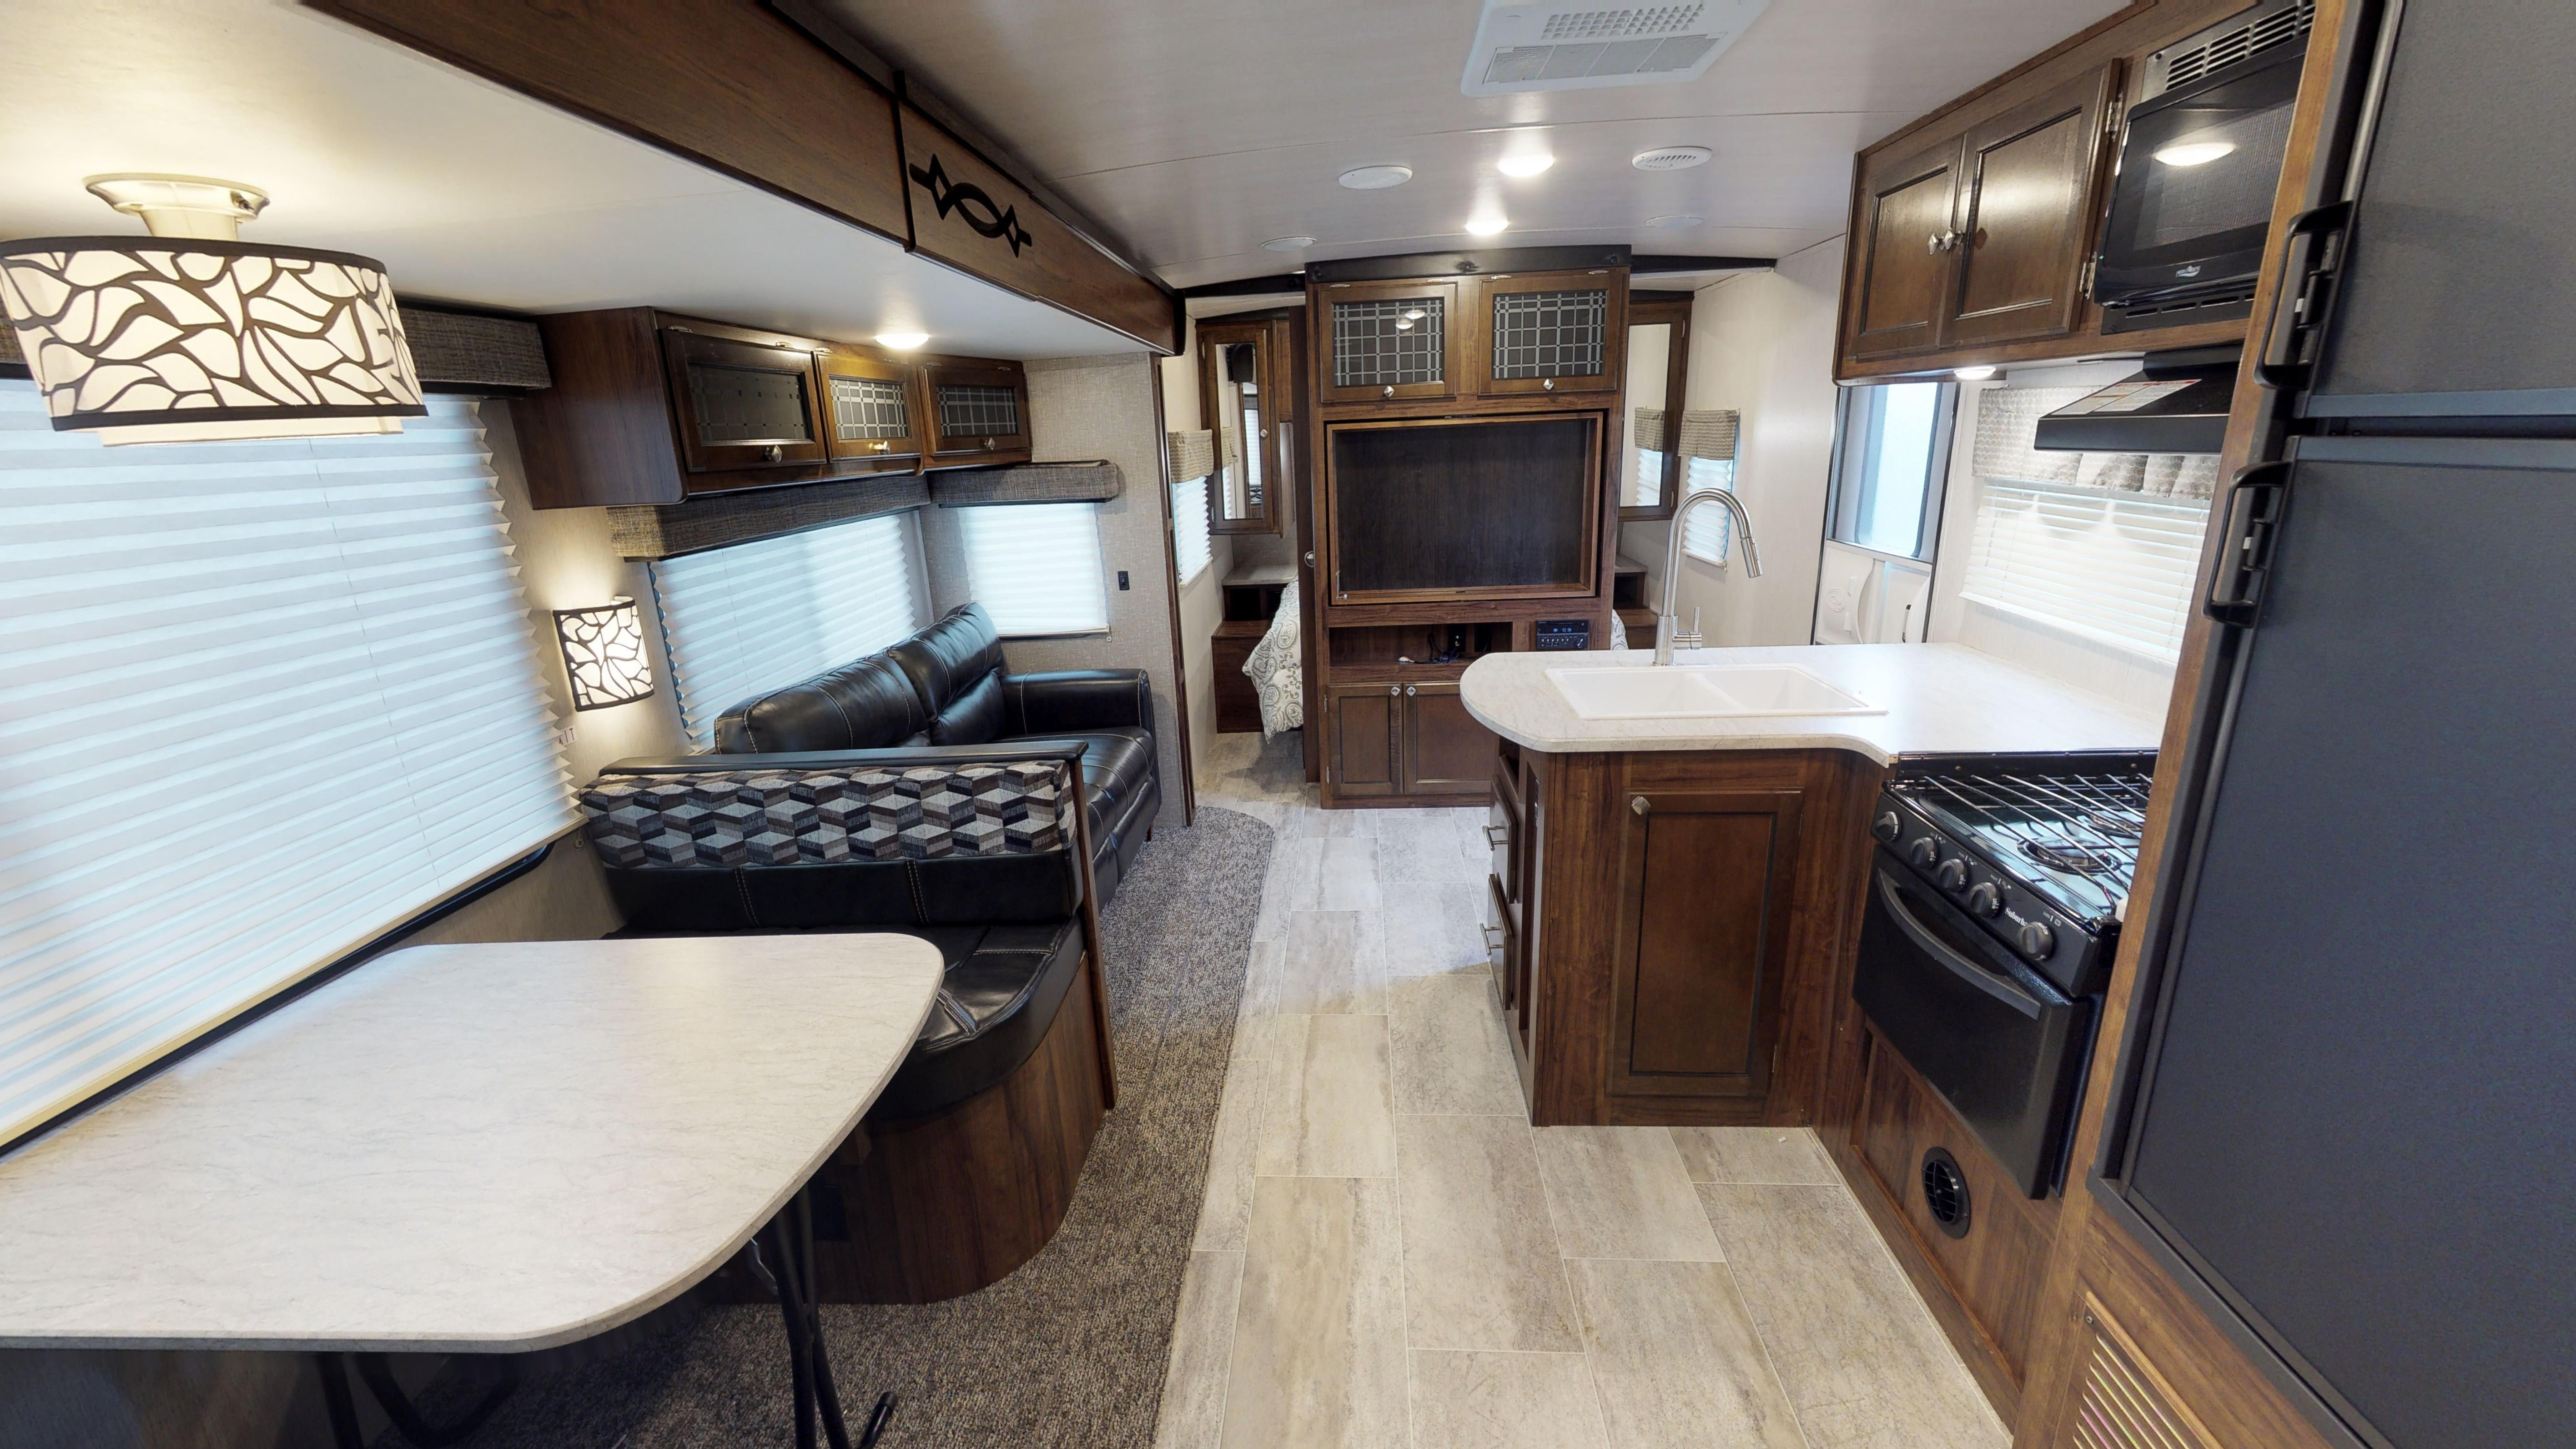 The Heartland Mallard M26 Travel Trailer Camp In Style And Stay